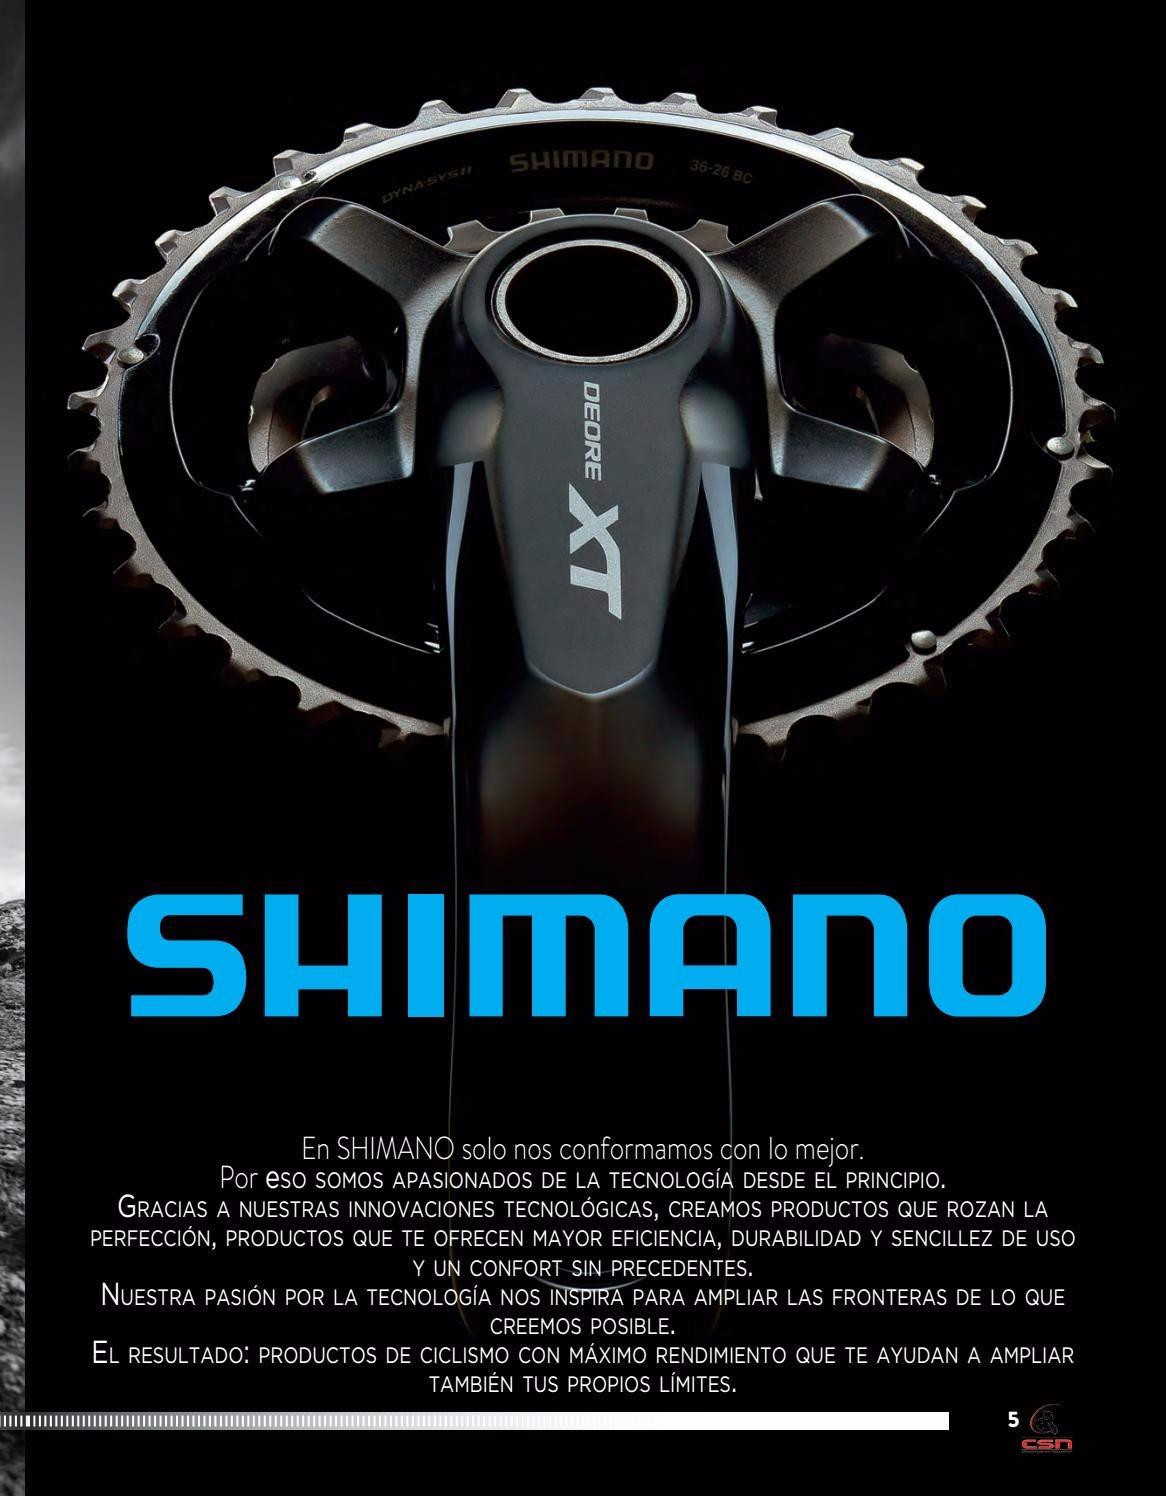 Catalogo shimano 2017 by mtb vco com issuu for Catalogo bricoman elmas 2017